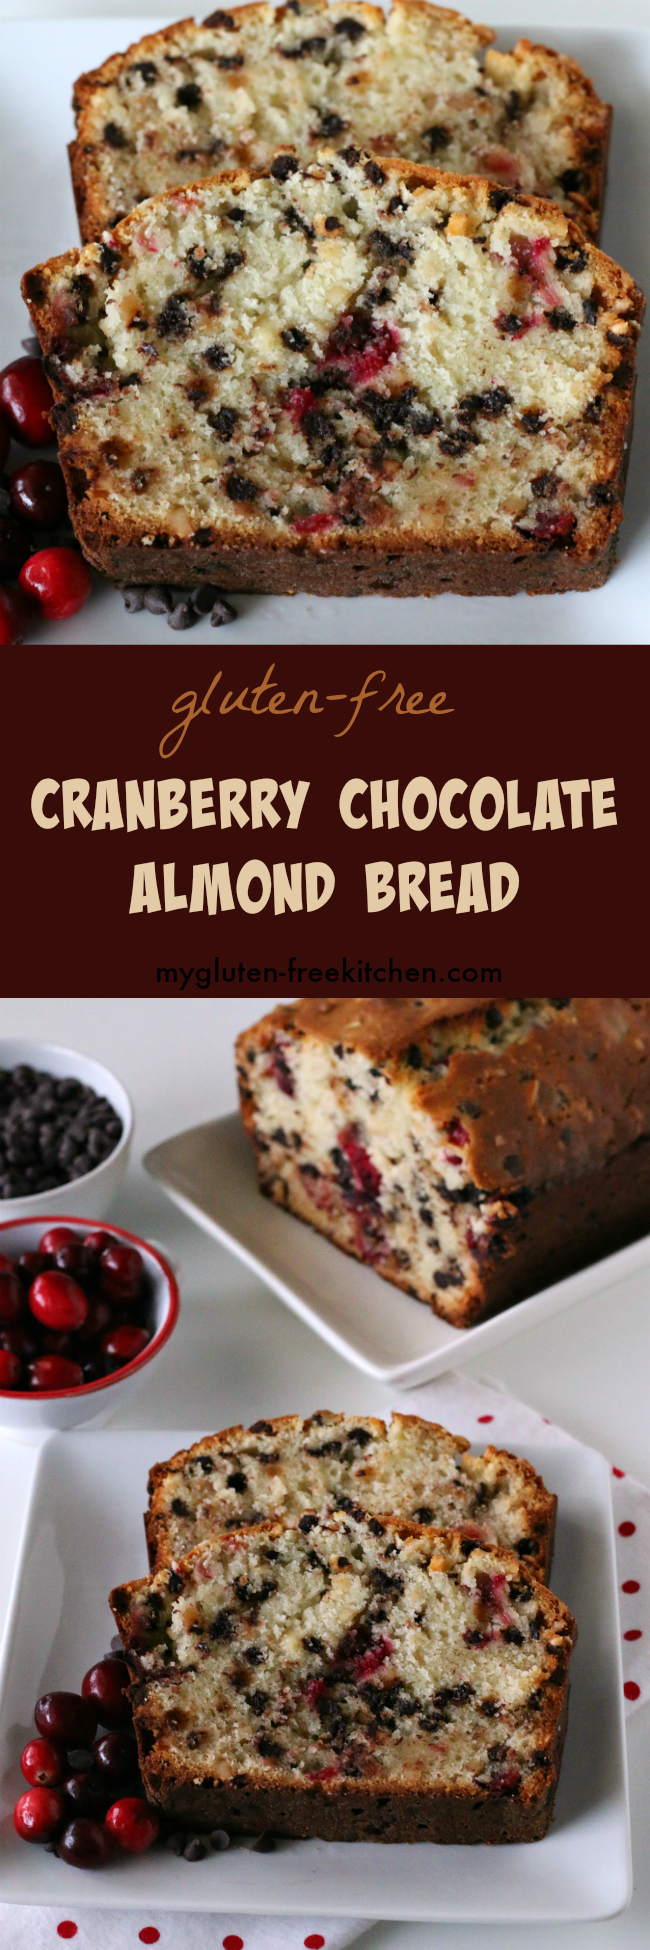 Gluten-free Cranberry Chocolate Almond Bread recipe